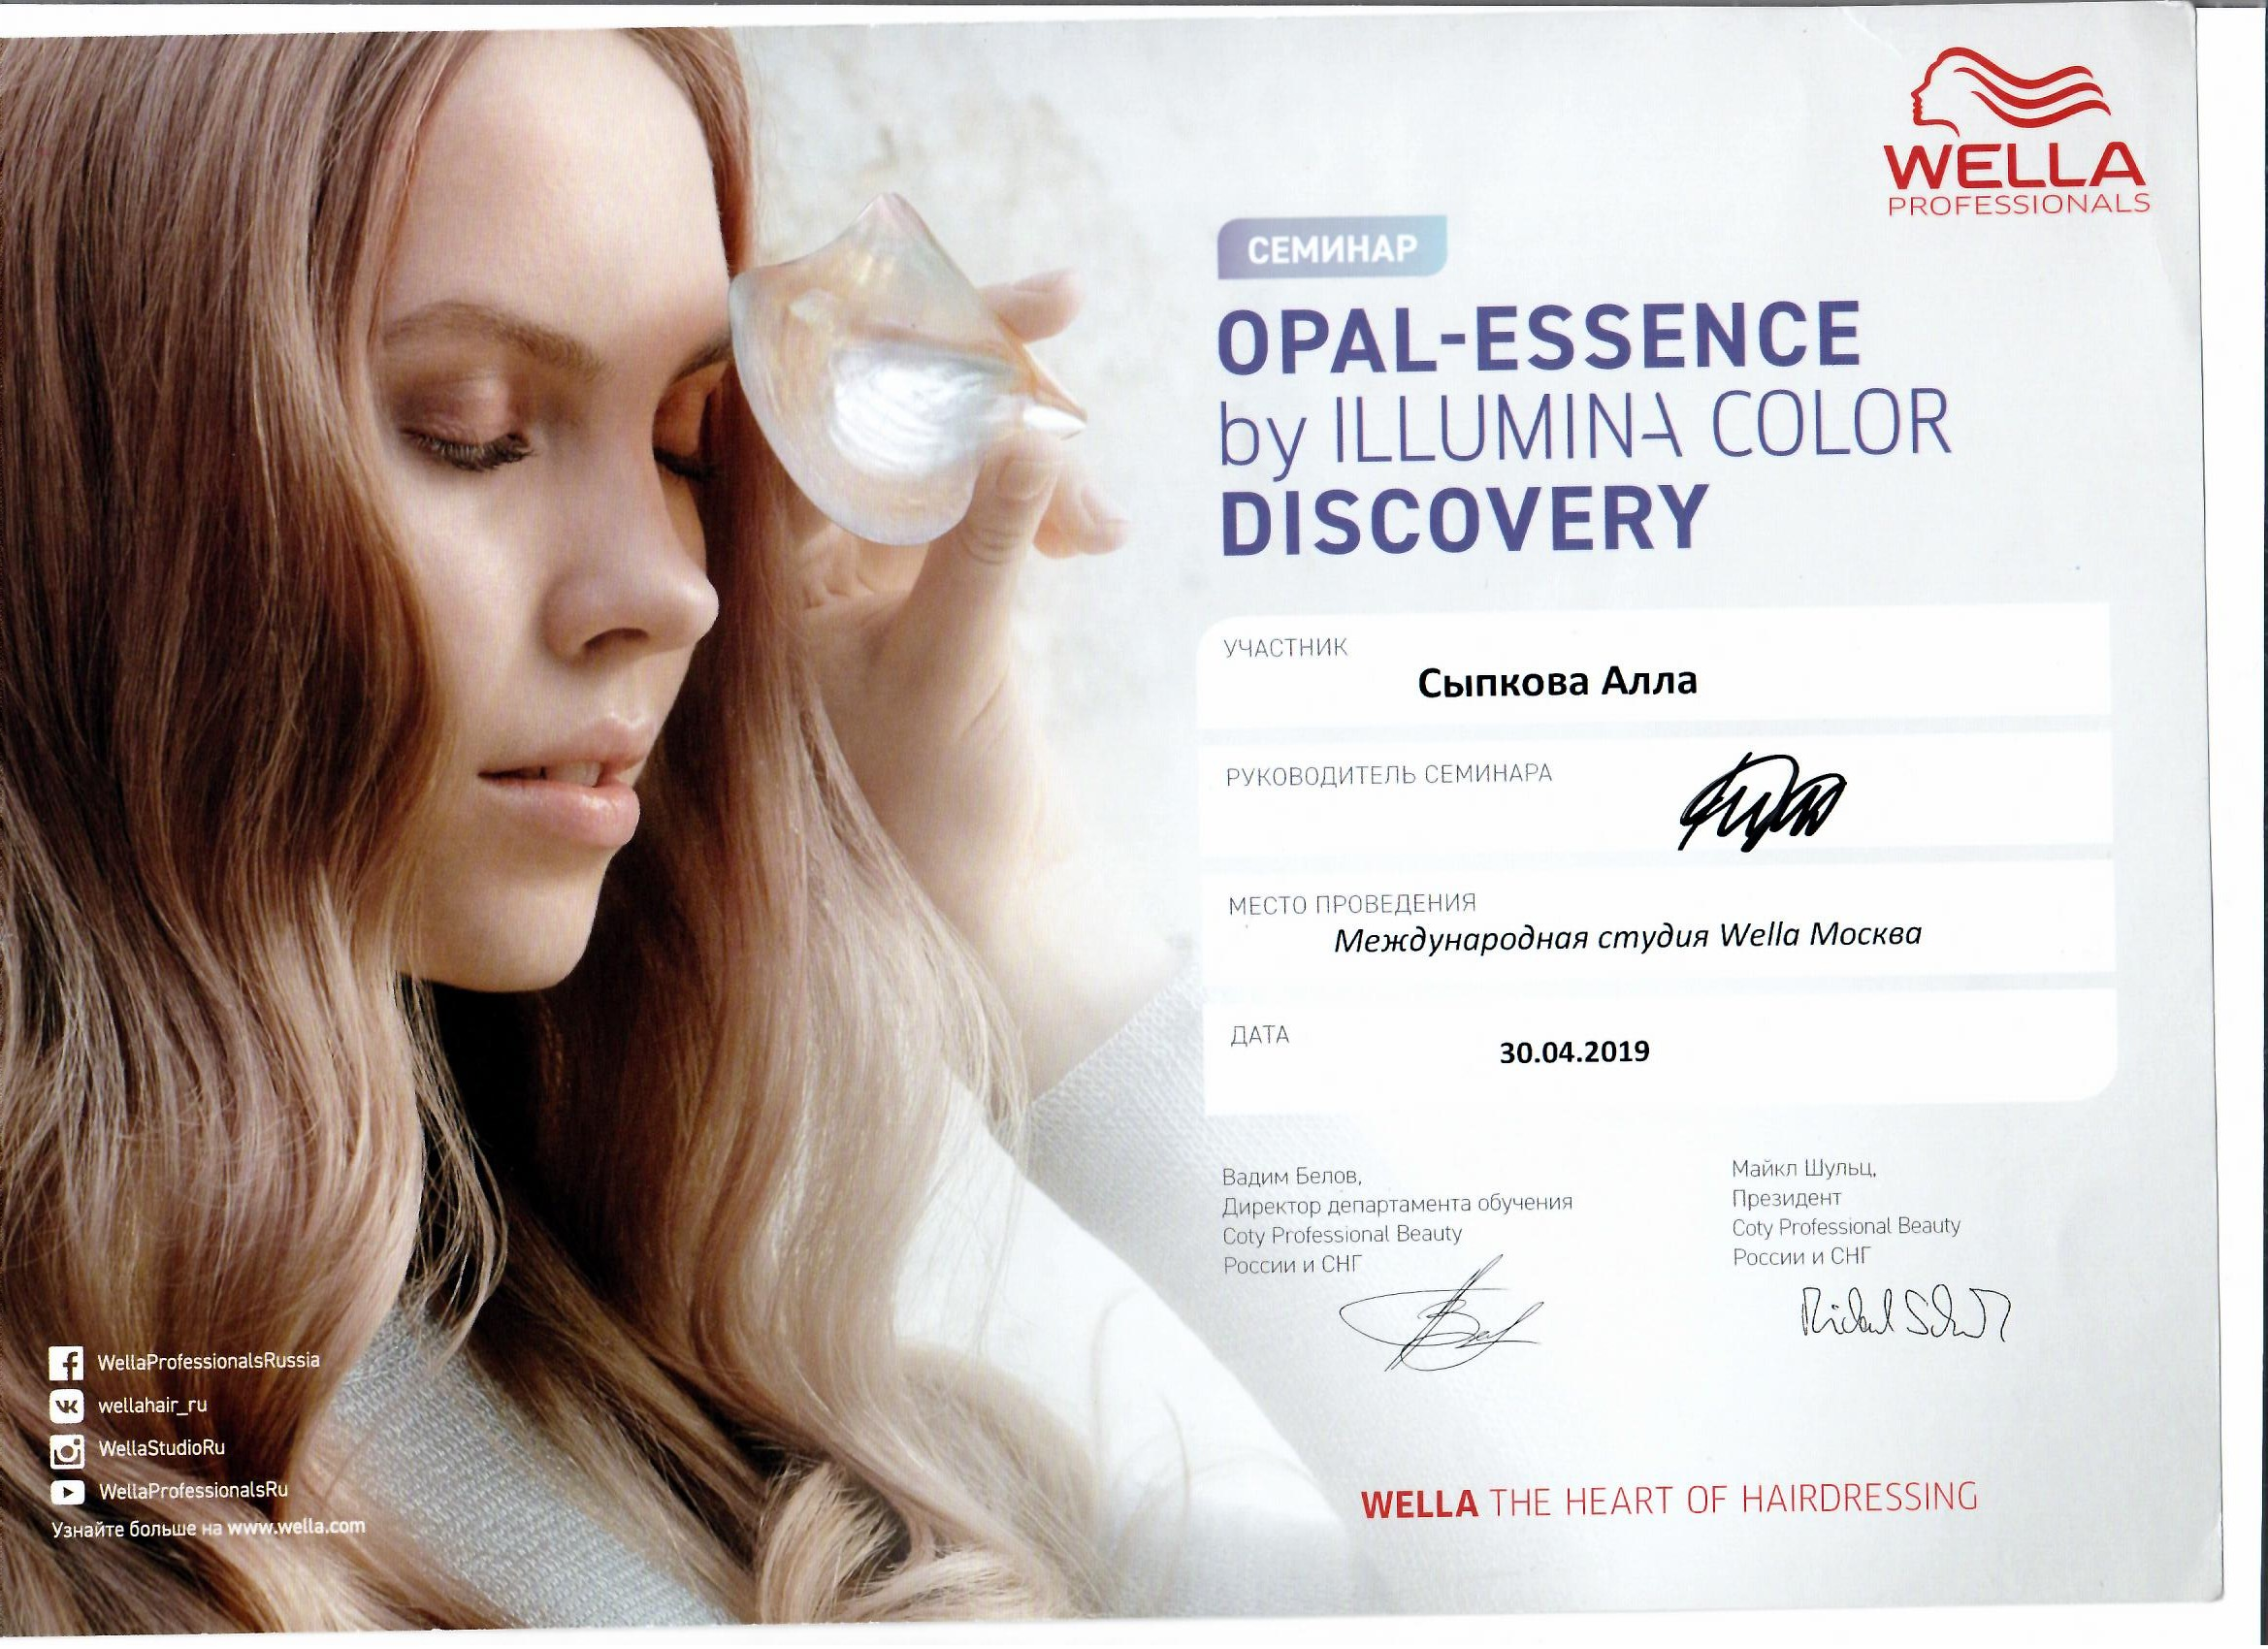 2019 opal-essence by illumina color discovery